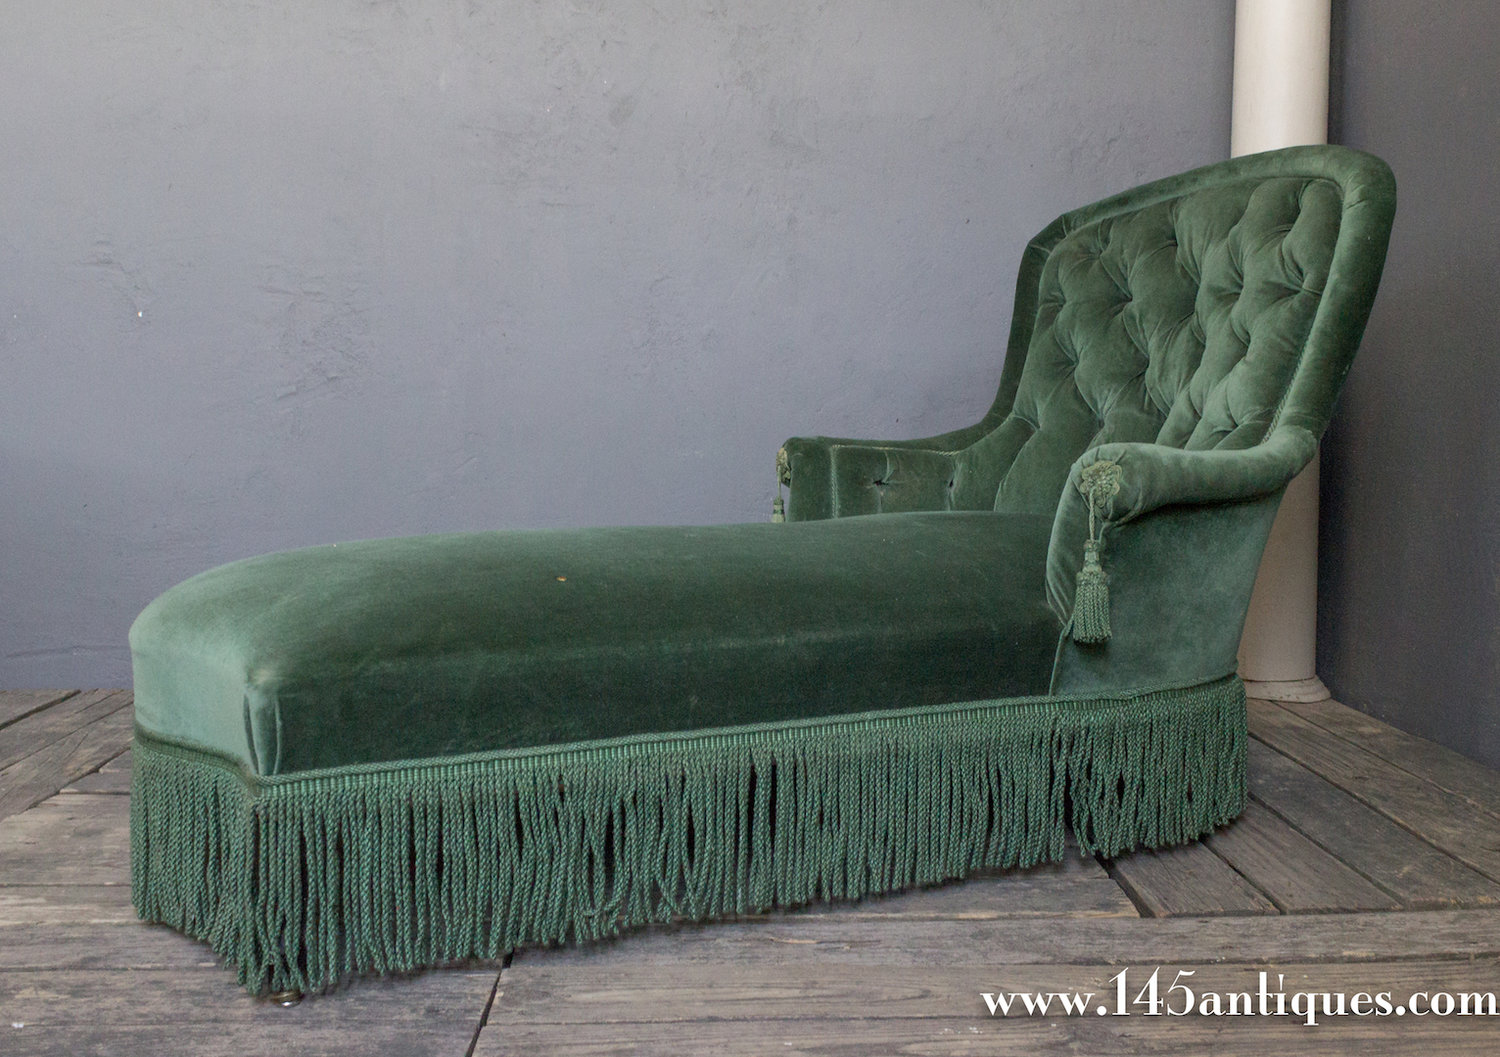 French 19th C Tufted Chaise Lounge 145 Antiques